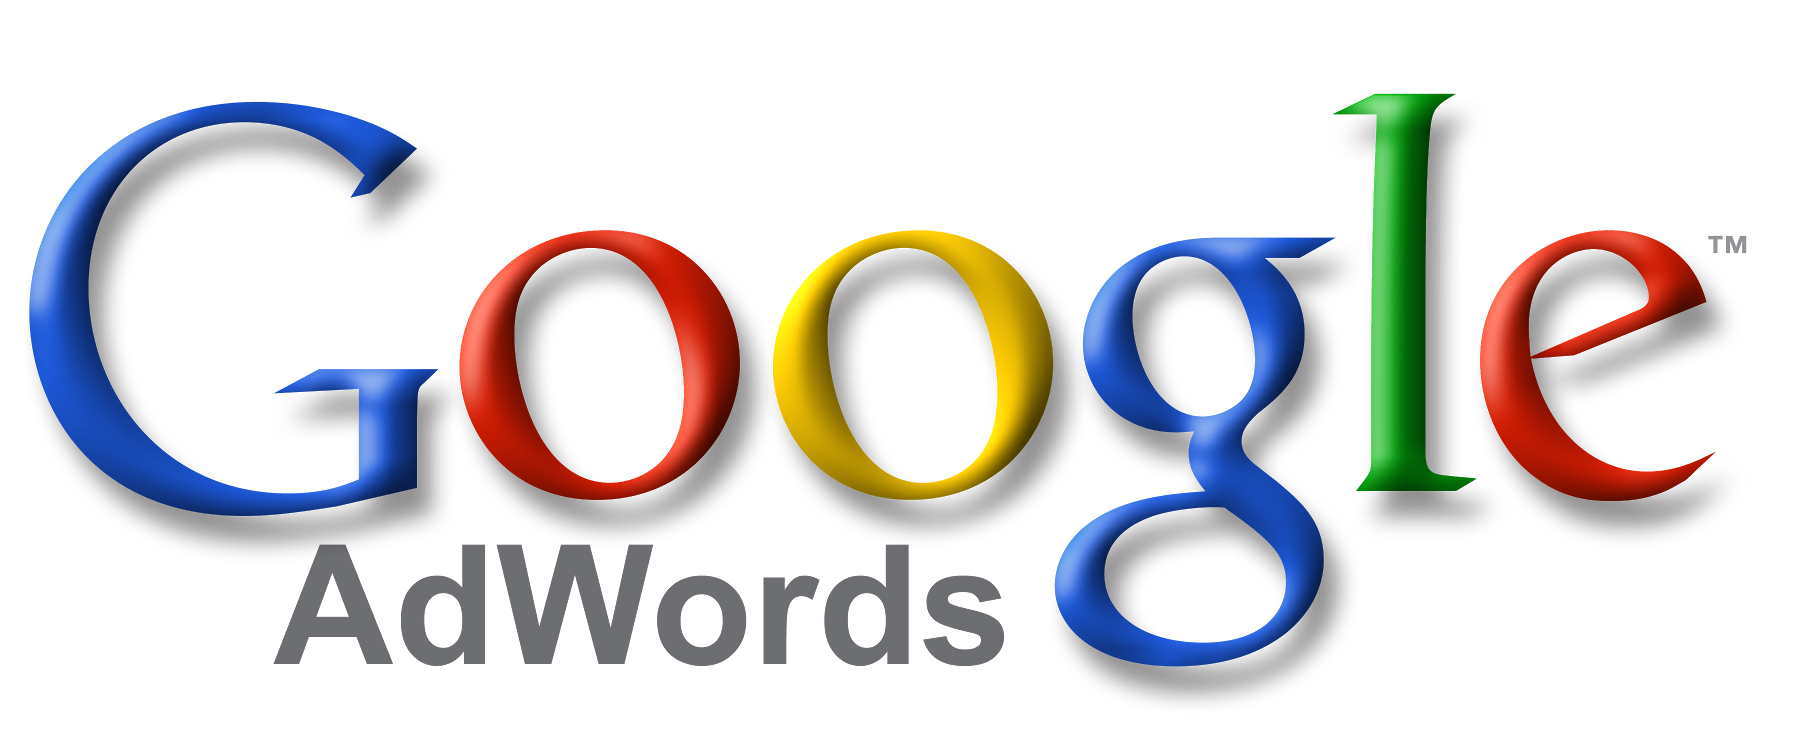 File:Logo-google-adwords.png - Google Adwords PNG